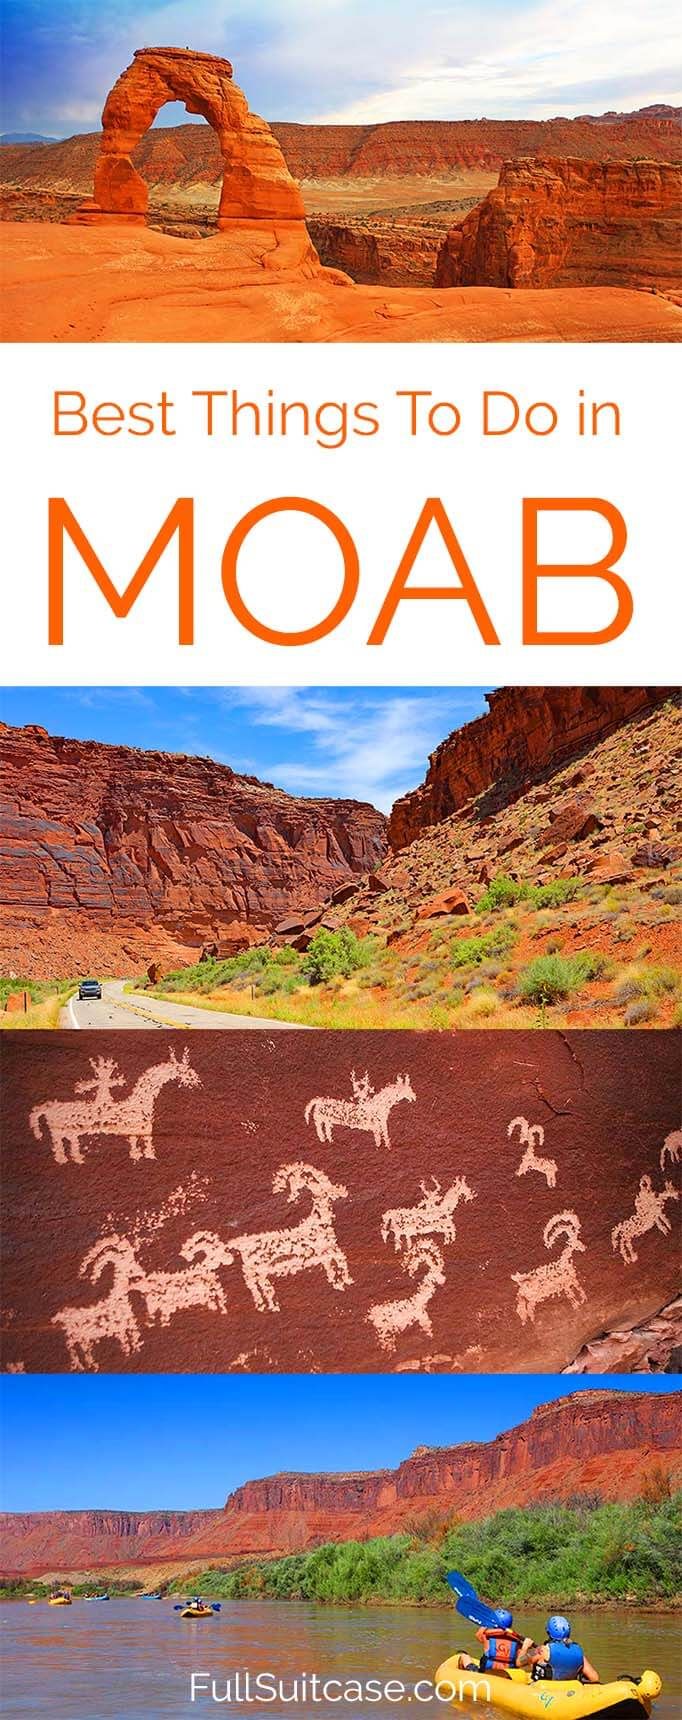 5 best things to do in Moab, Utah and trip itinerary for 2 to 3 days